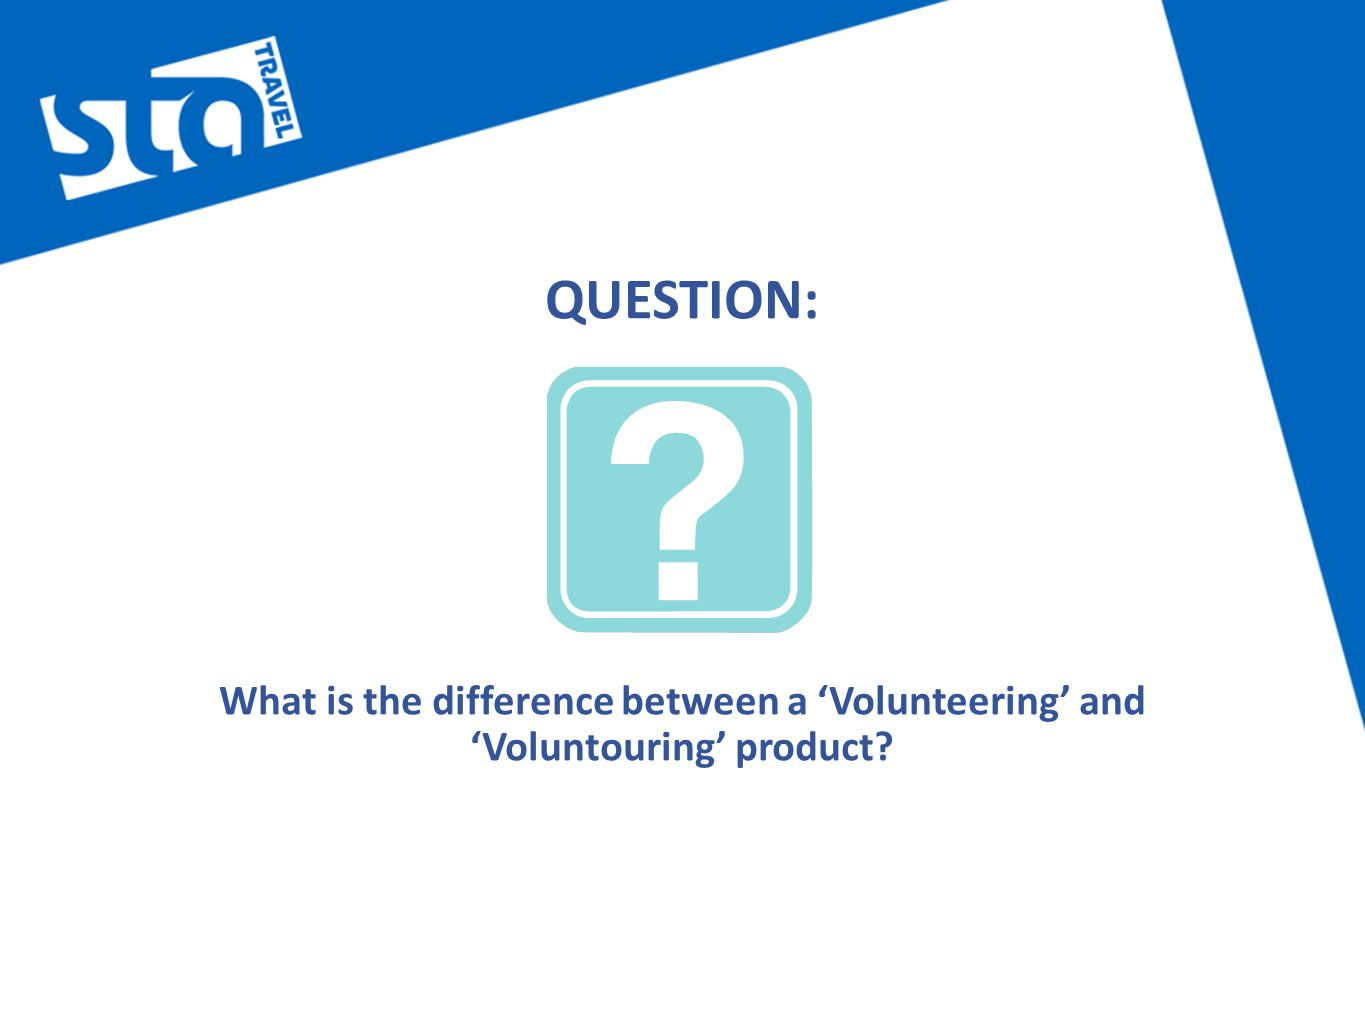 QUESTION: What is the difference between a 'Volunteering' and 'Voluntouring' product